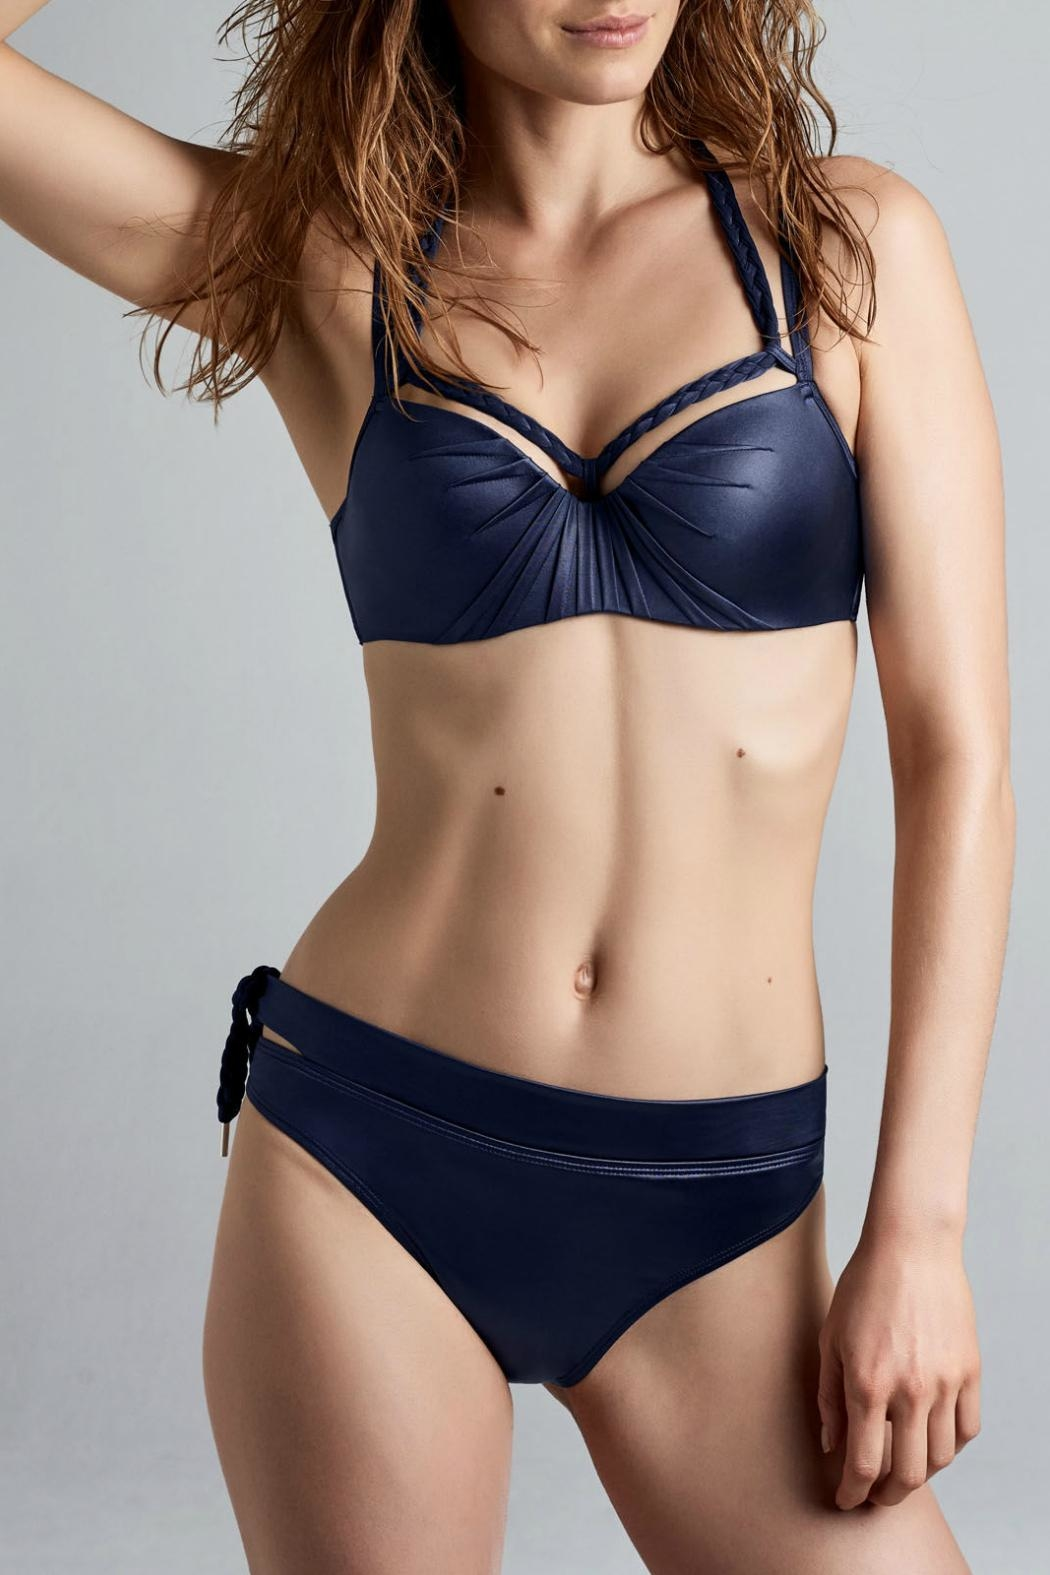 f865f76f79525 marlies dekkers Holi Glamour Briefs from Canada by Blue Sky Fashions ...